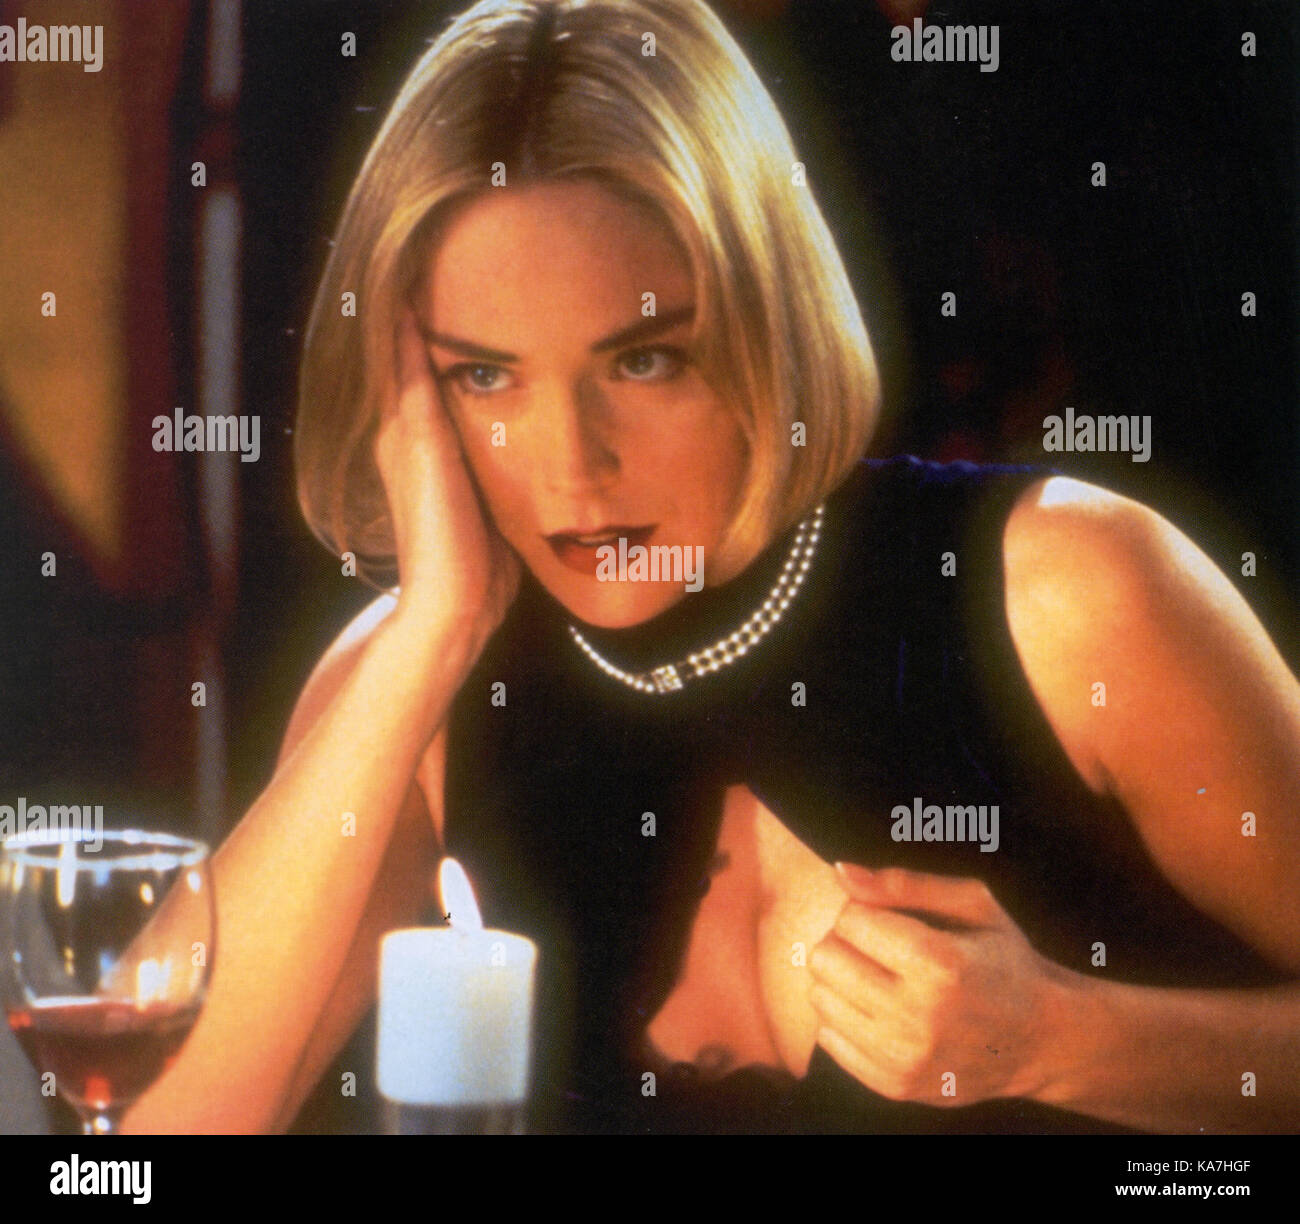 SILVER 1993 Paramount Pictures film with Sharon Stone - Stock Image